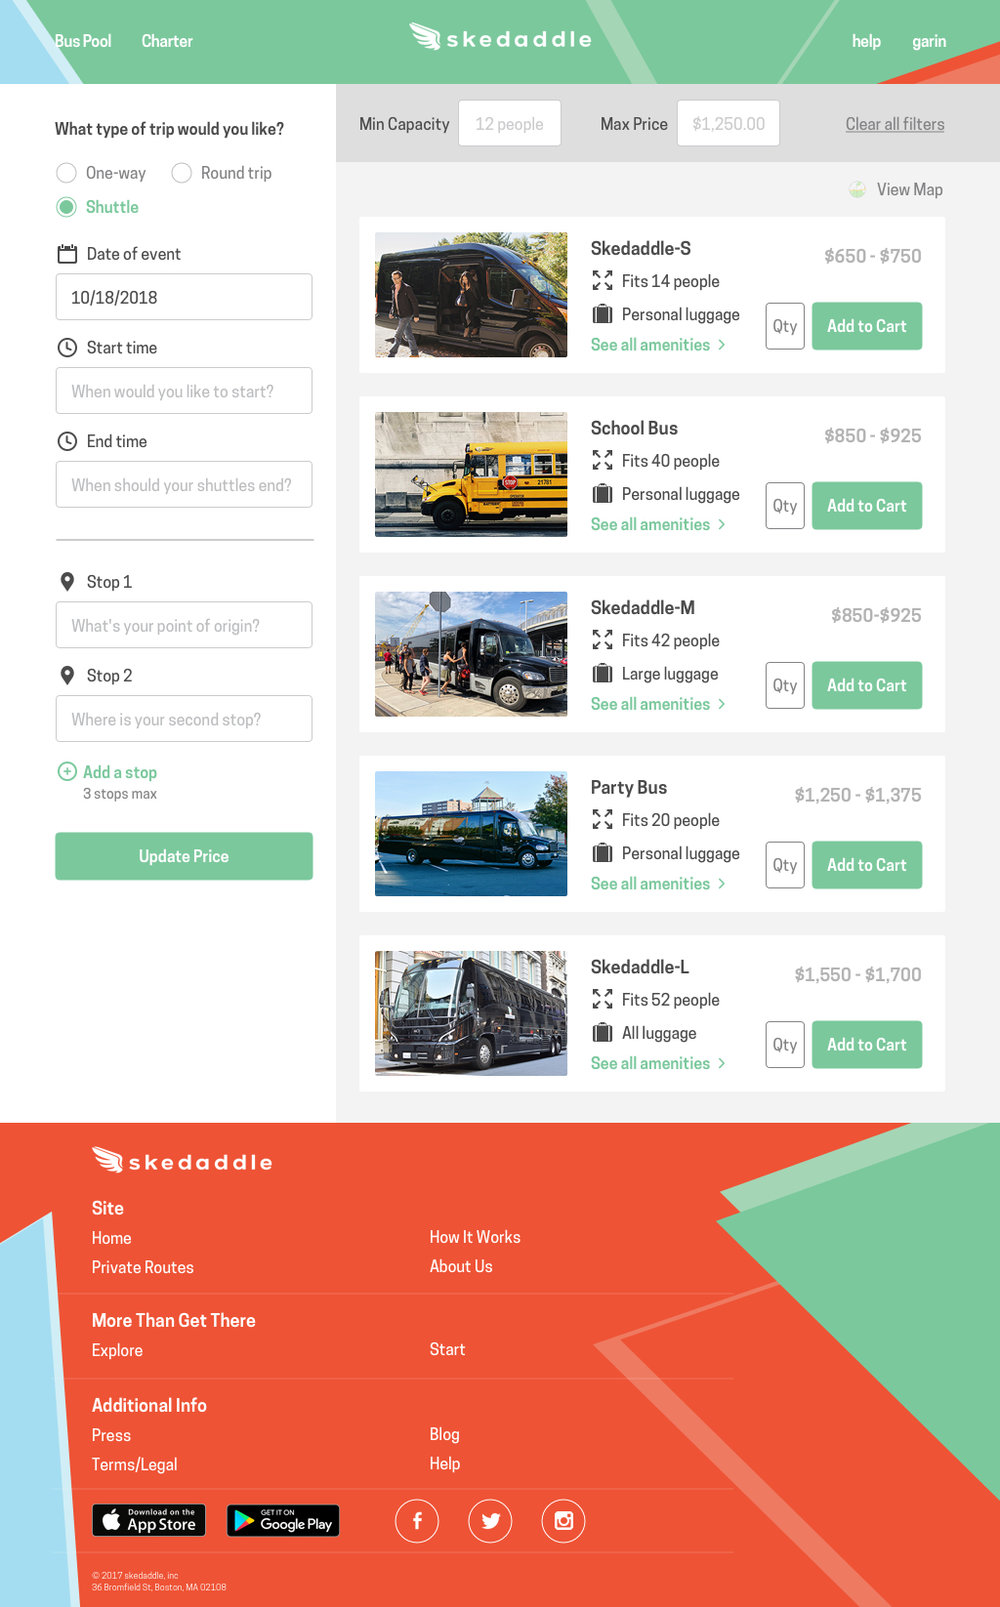 Once a user is here, they will be able to see their vehicle options with a price range. As they adjust their trip criteria, the price range will narrow down until all fields are entered and a singular price is given.